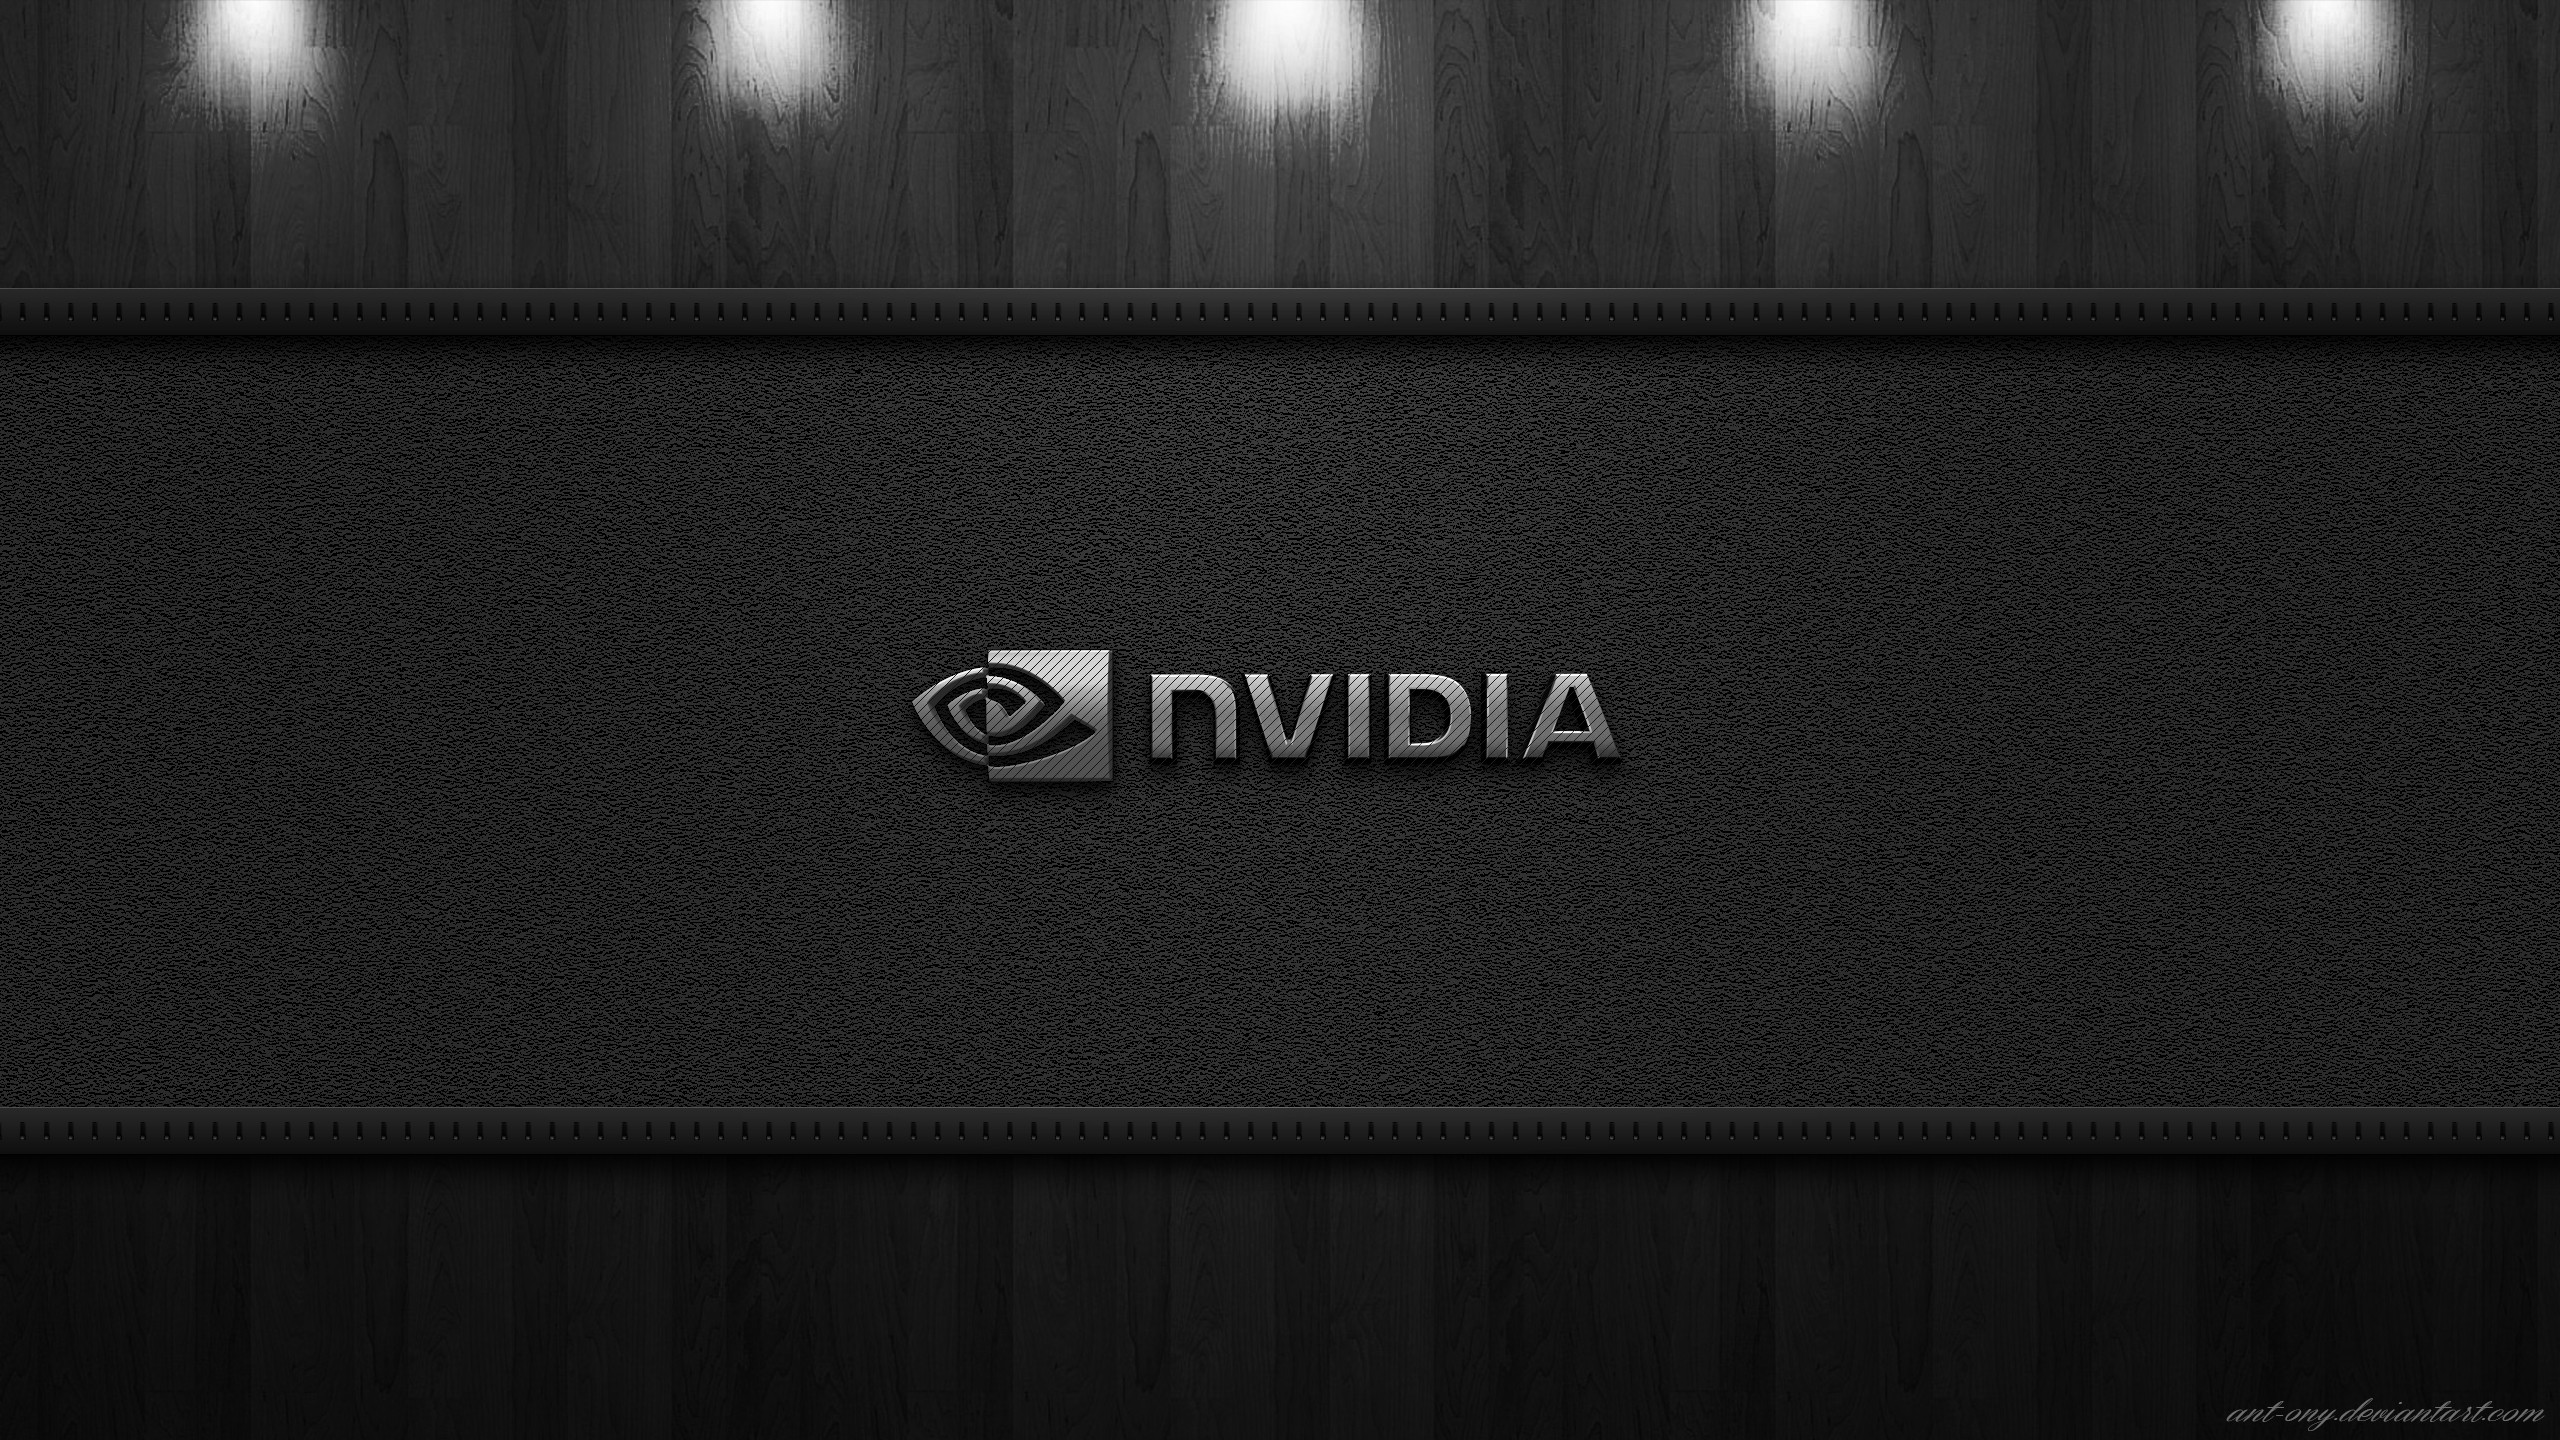 Nvidia Logo Hd Logo 4k Wallpapers Images Backgrounds